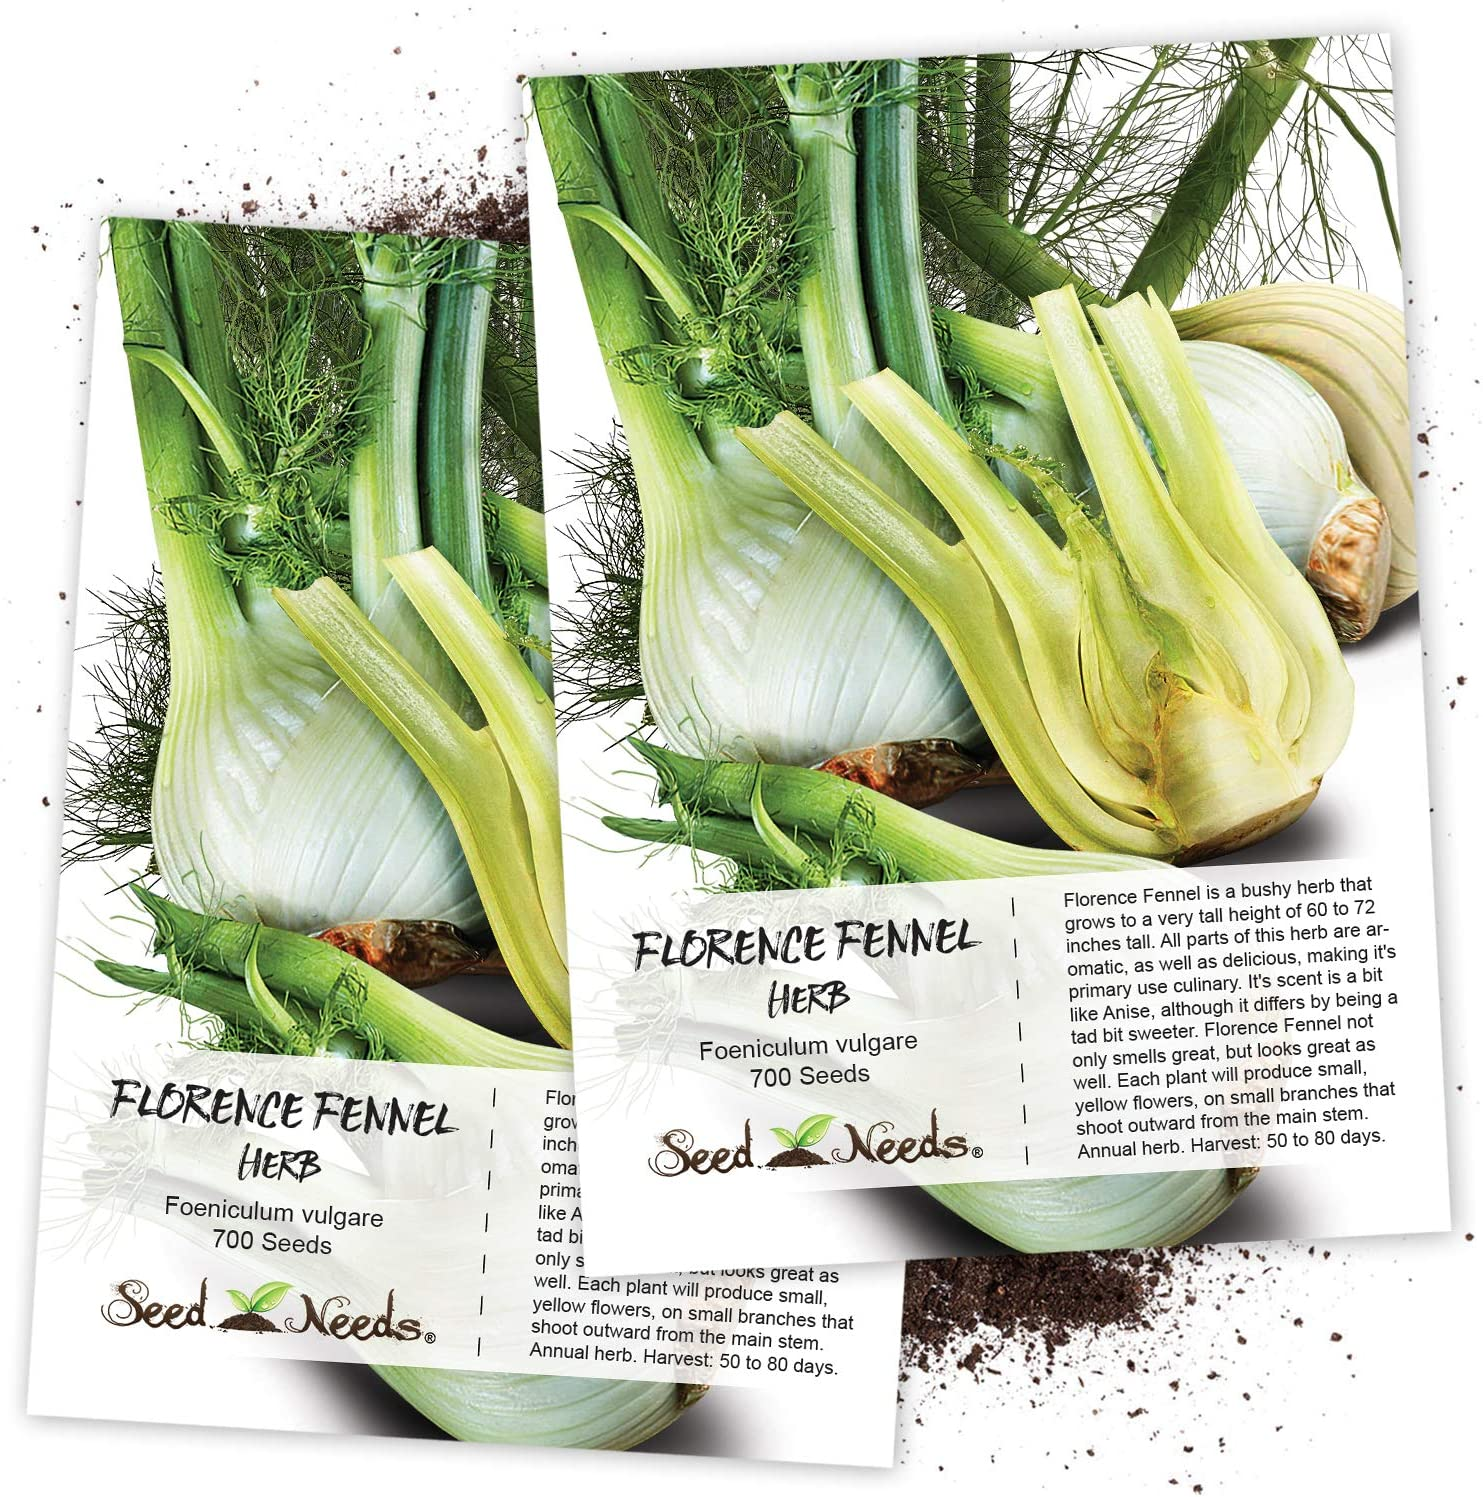 Seed Needs, Florence Fennel Herb (Foeniculum vulgare) Twin Pack of 700 Seeds Each Non-GMO